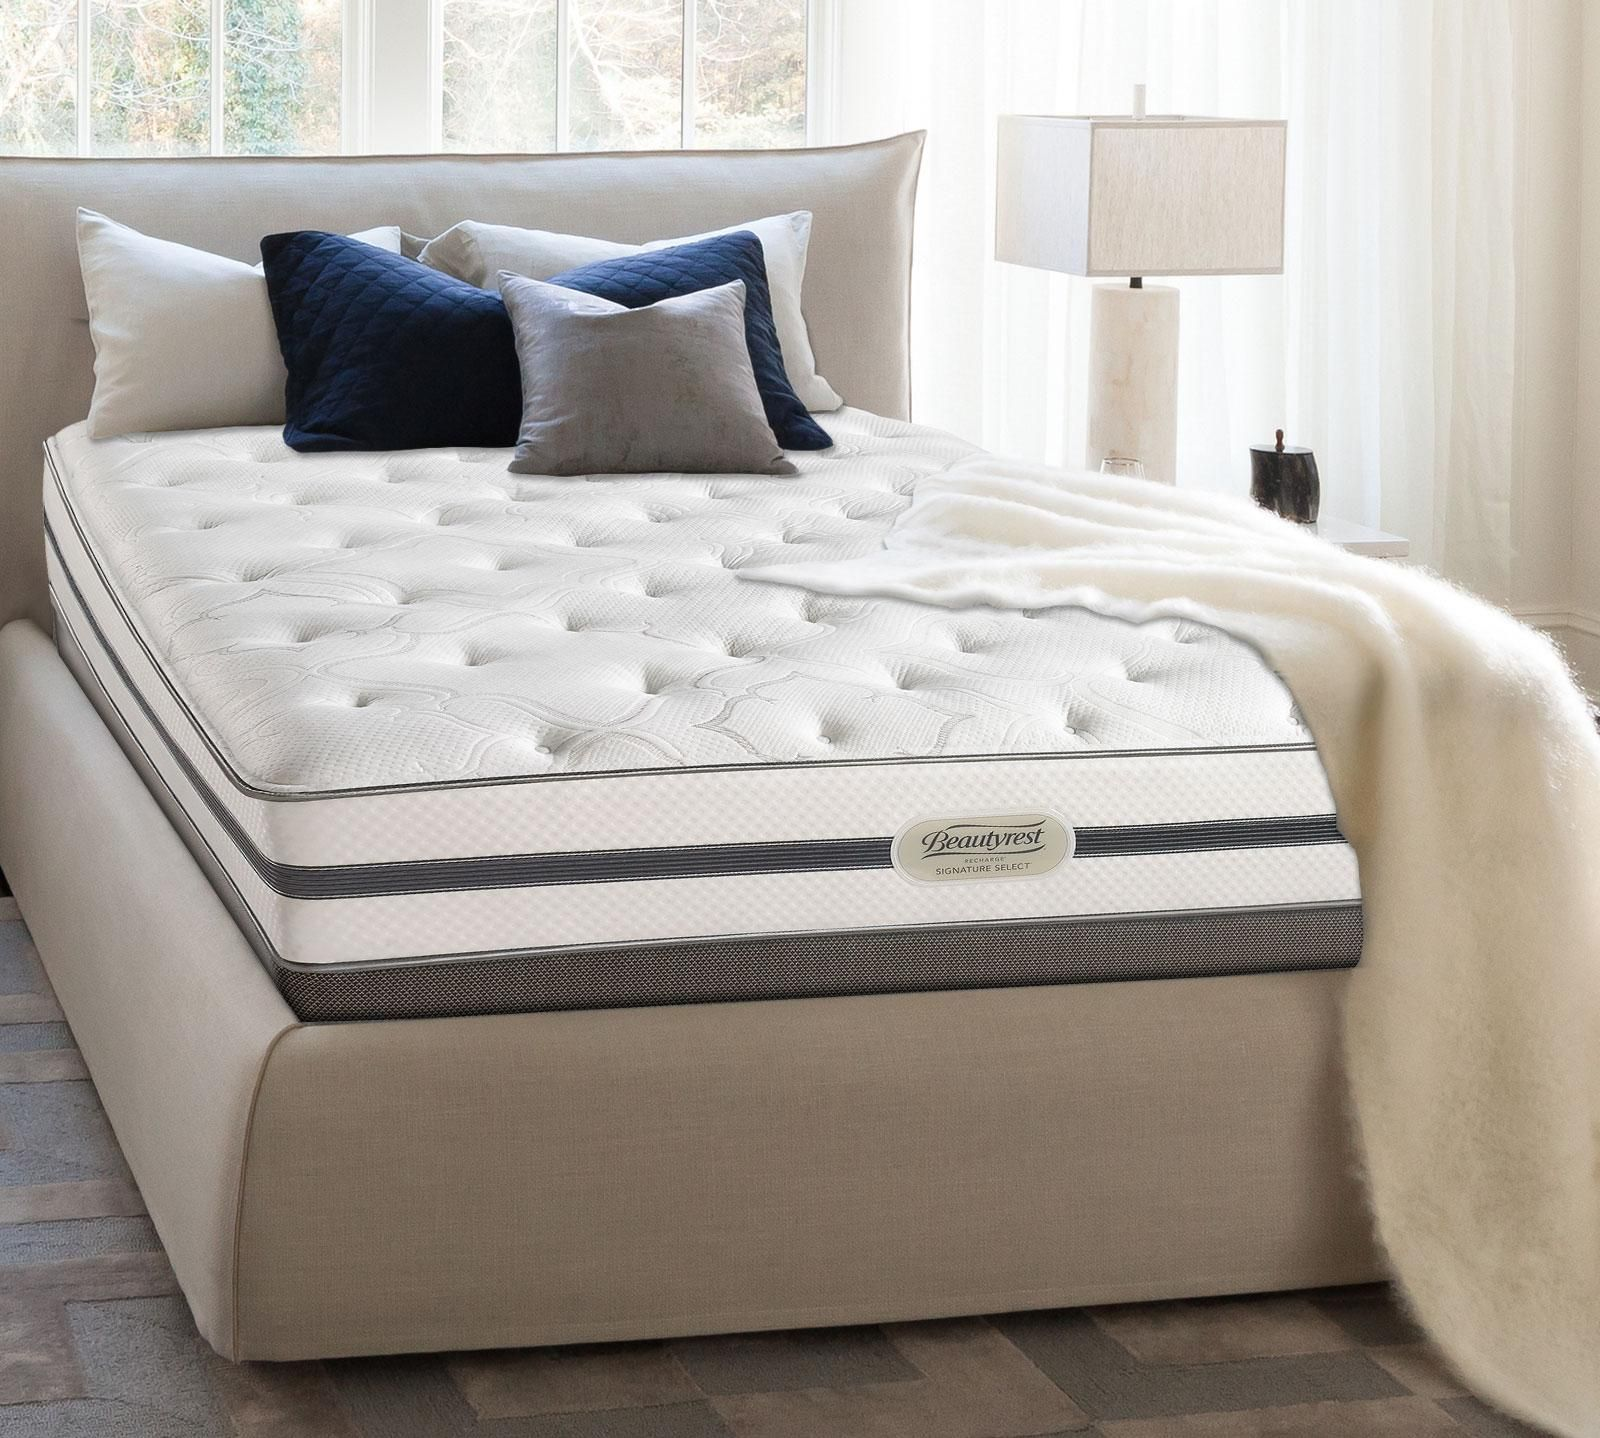 Shop for your Simmons Beautyrest Recharge Hartfield 11.5